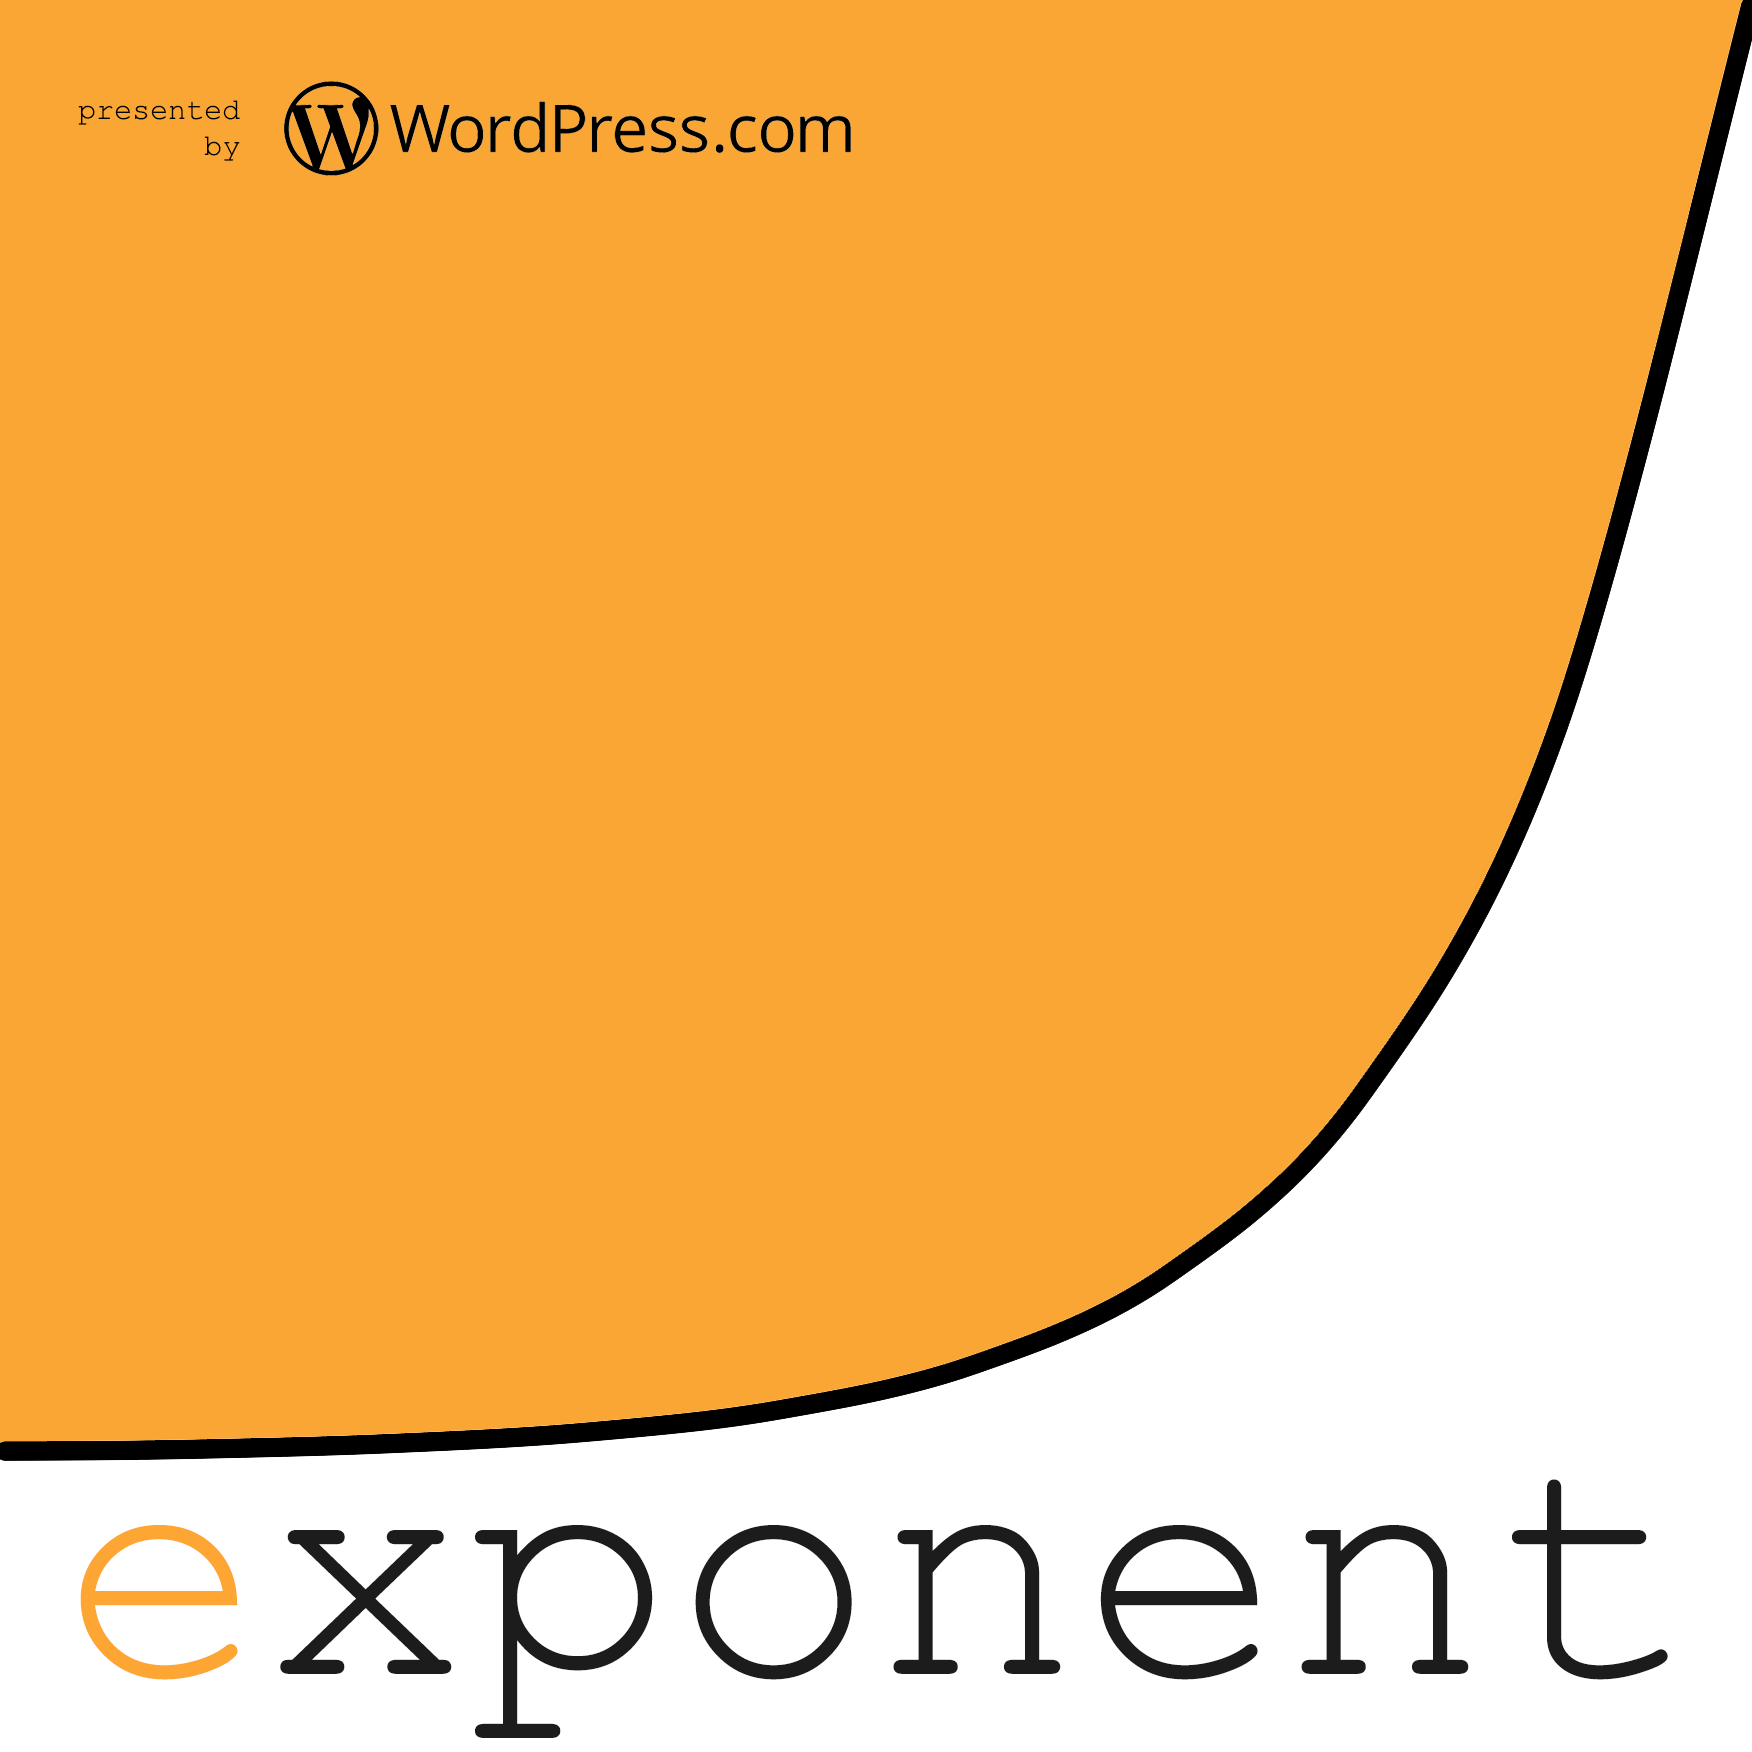 Exponent-3-wp.png